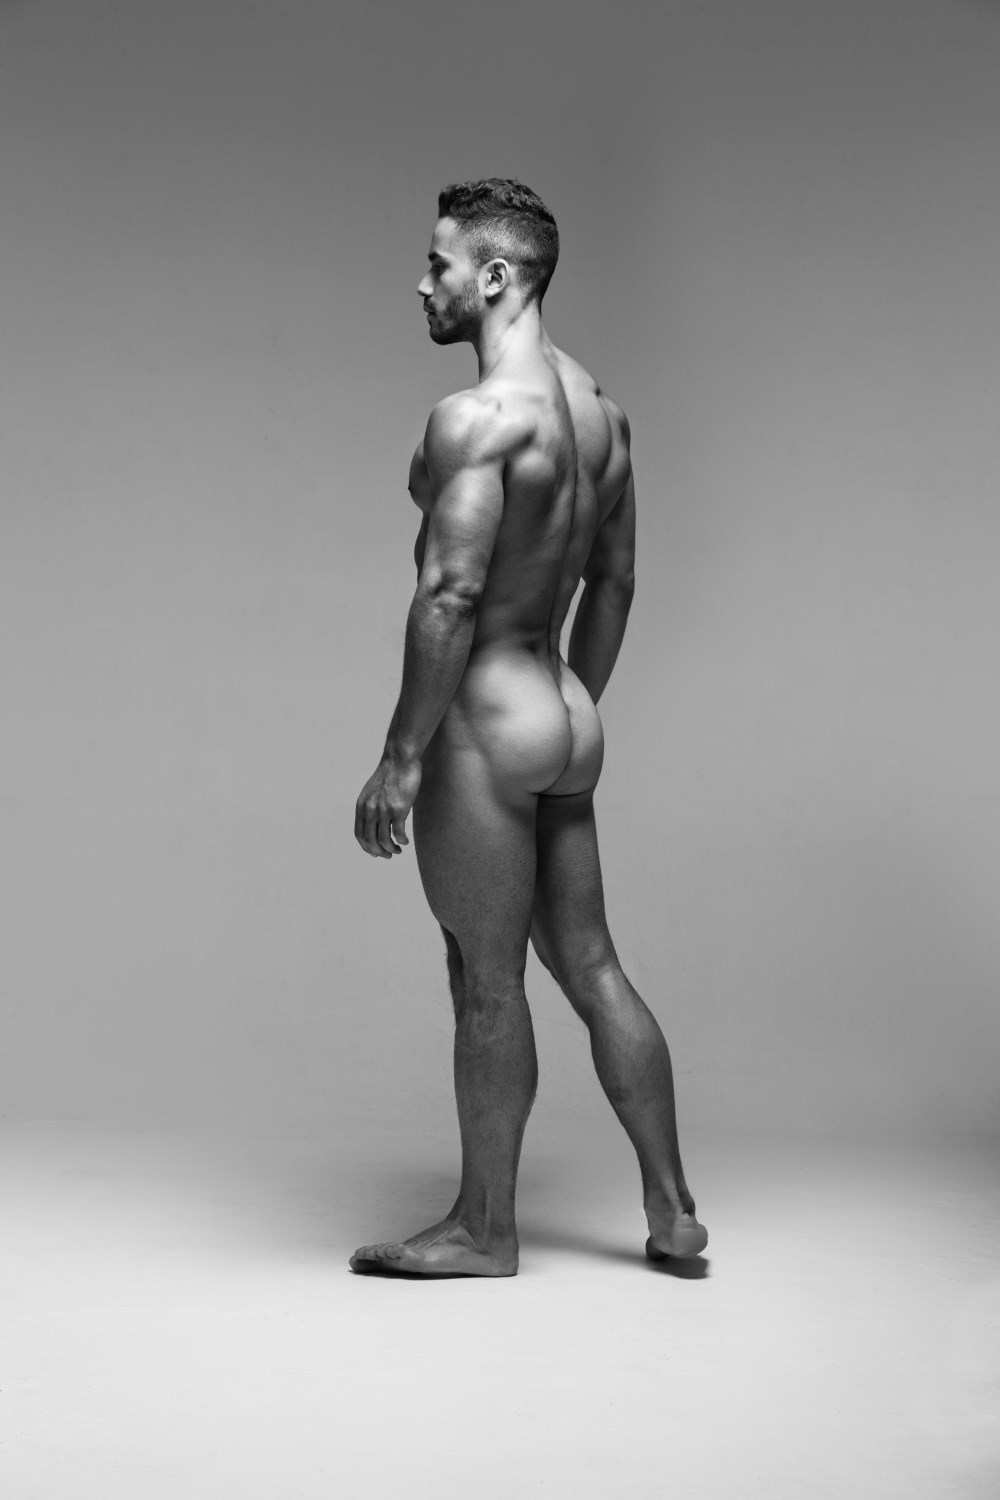 Nude male art models with erections